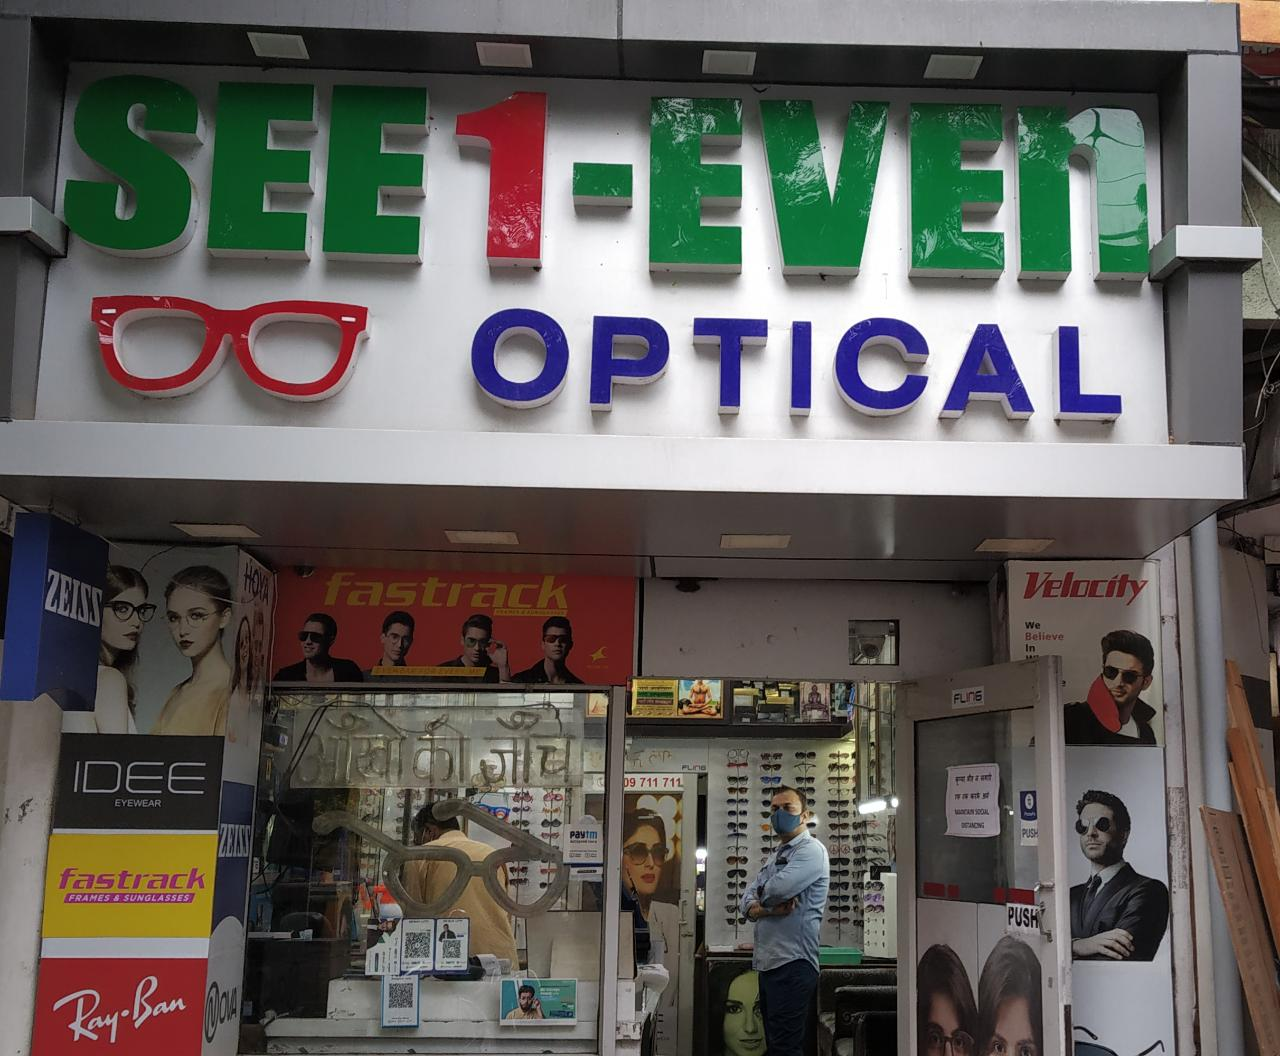 SEE1-EVEN OPTICAL